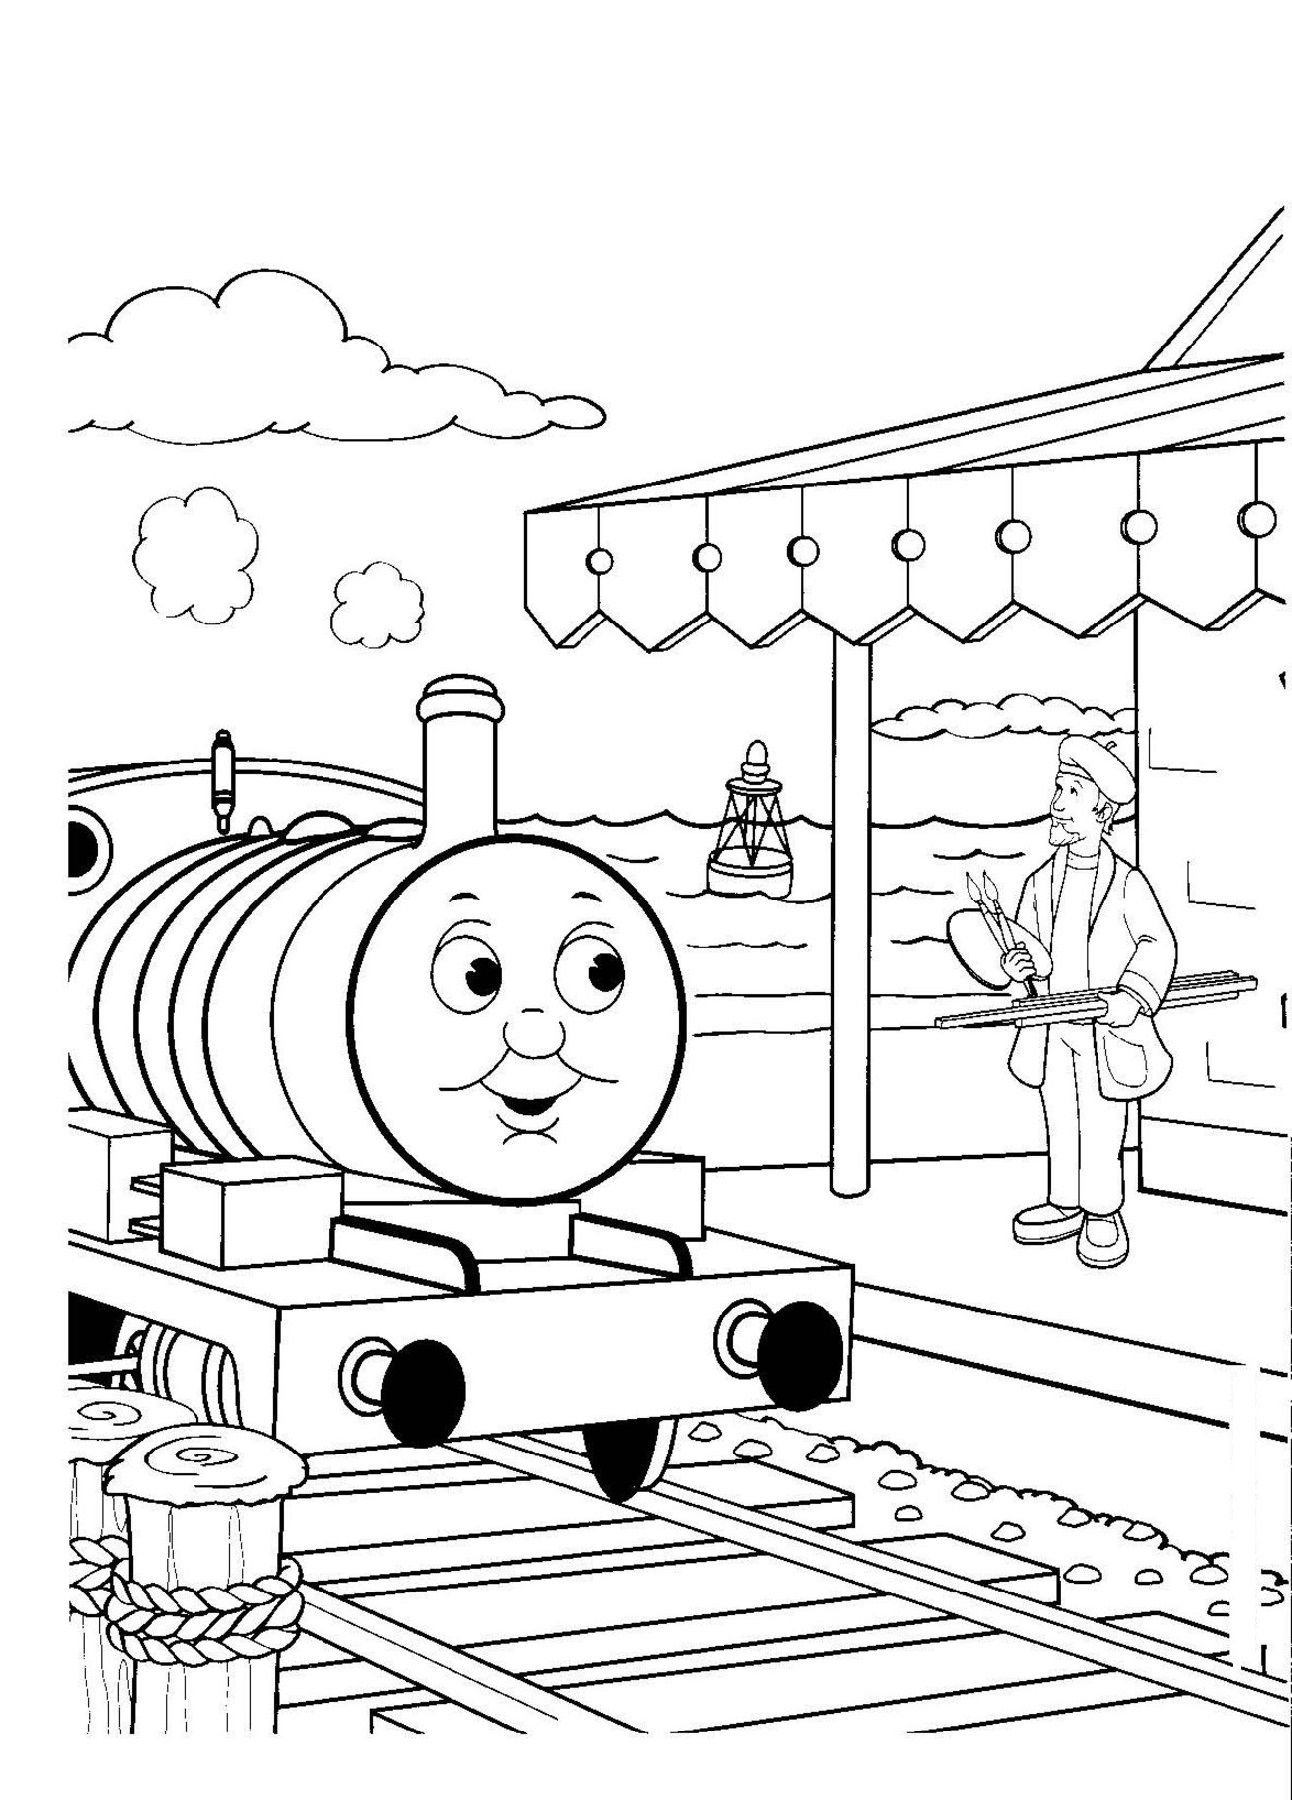 Thomas Railway Coloring Pages For Boys